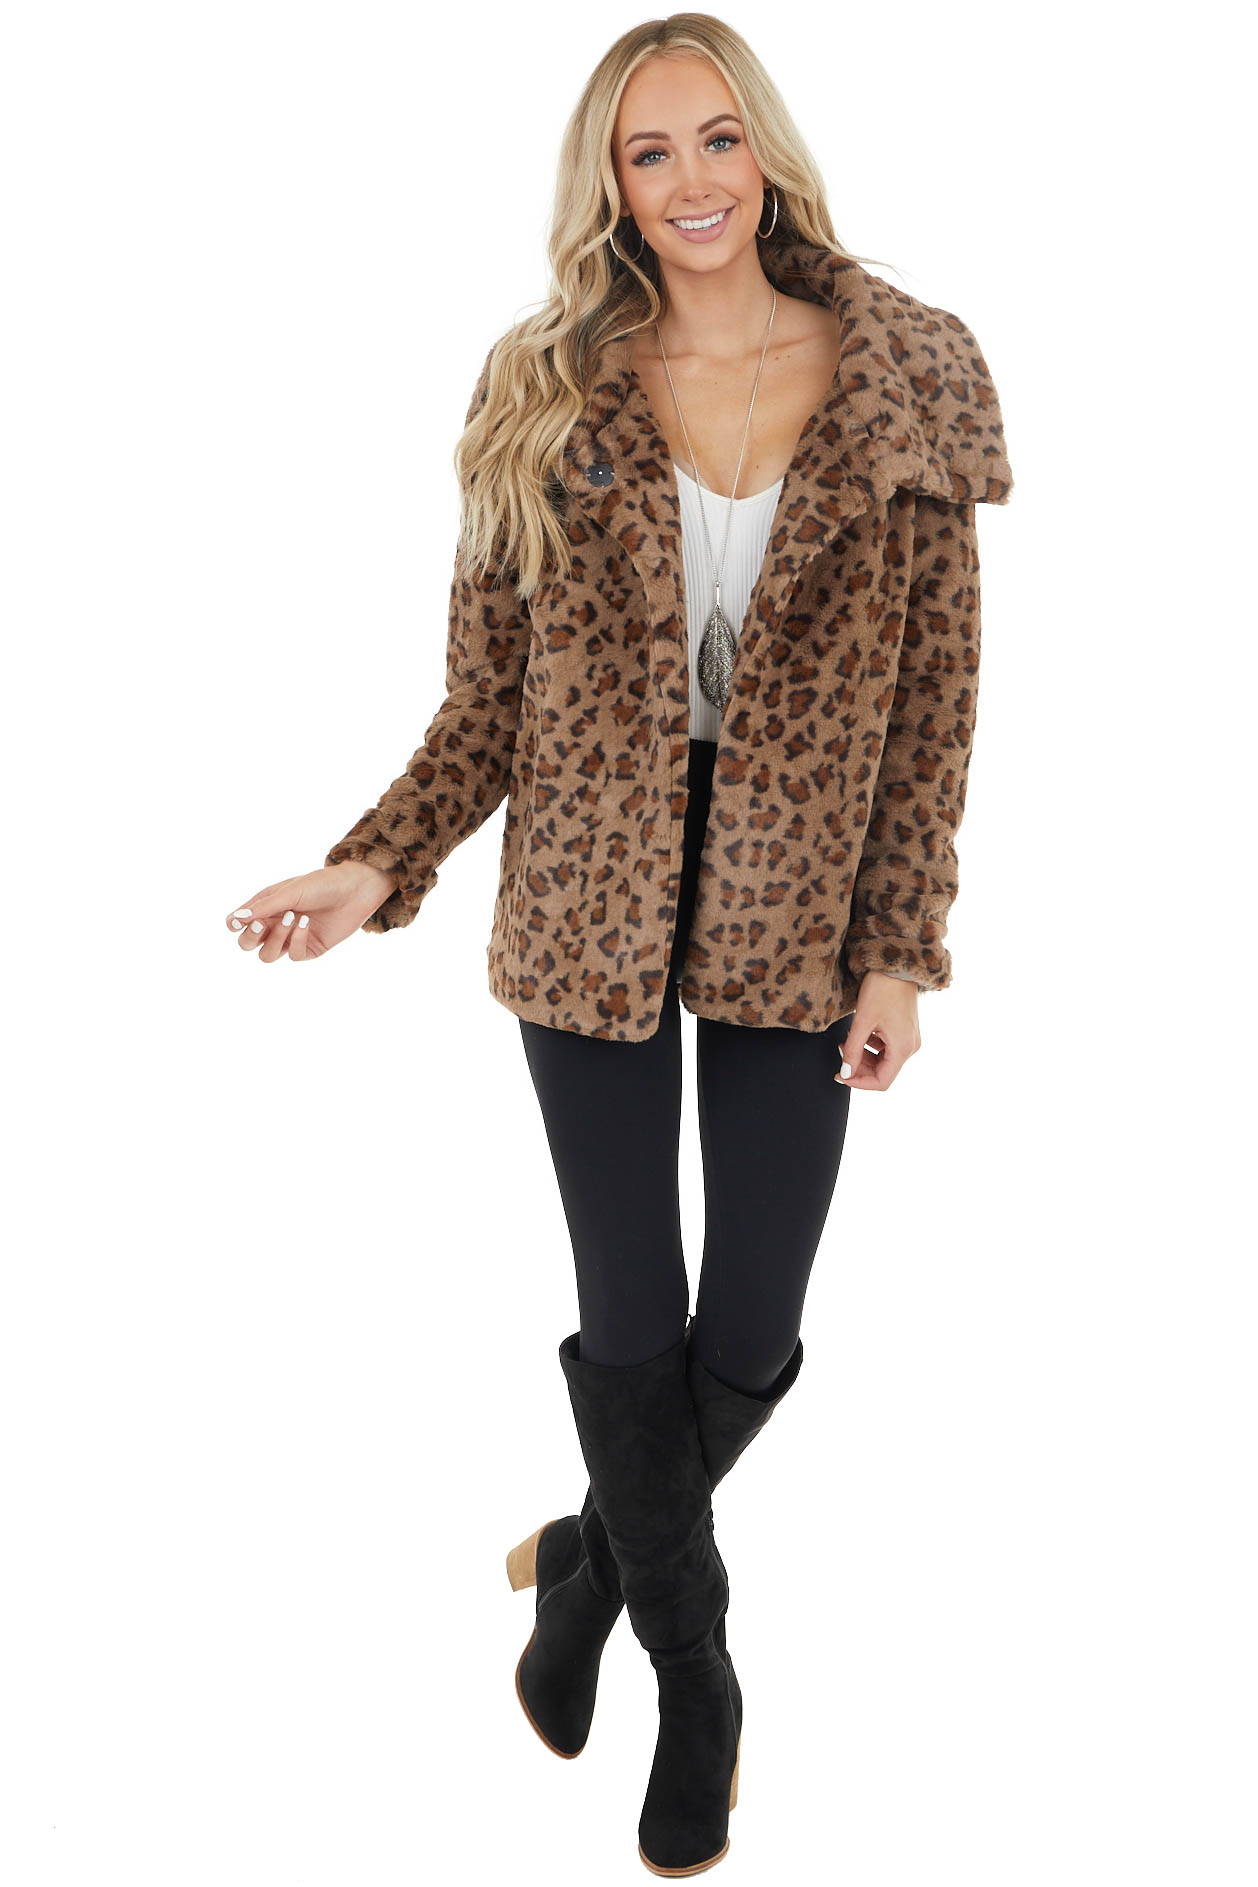 Cocoa Leopard Print Faux Fur Open Jacket with Snap Button